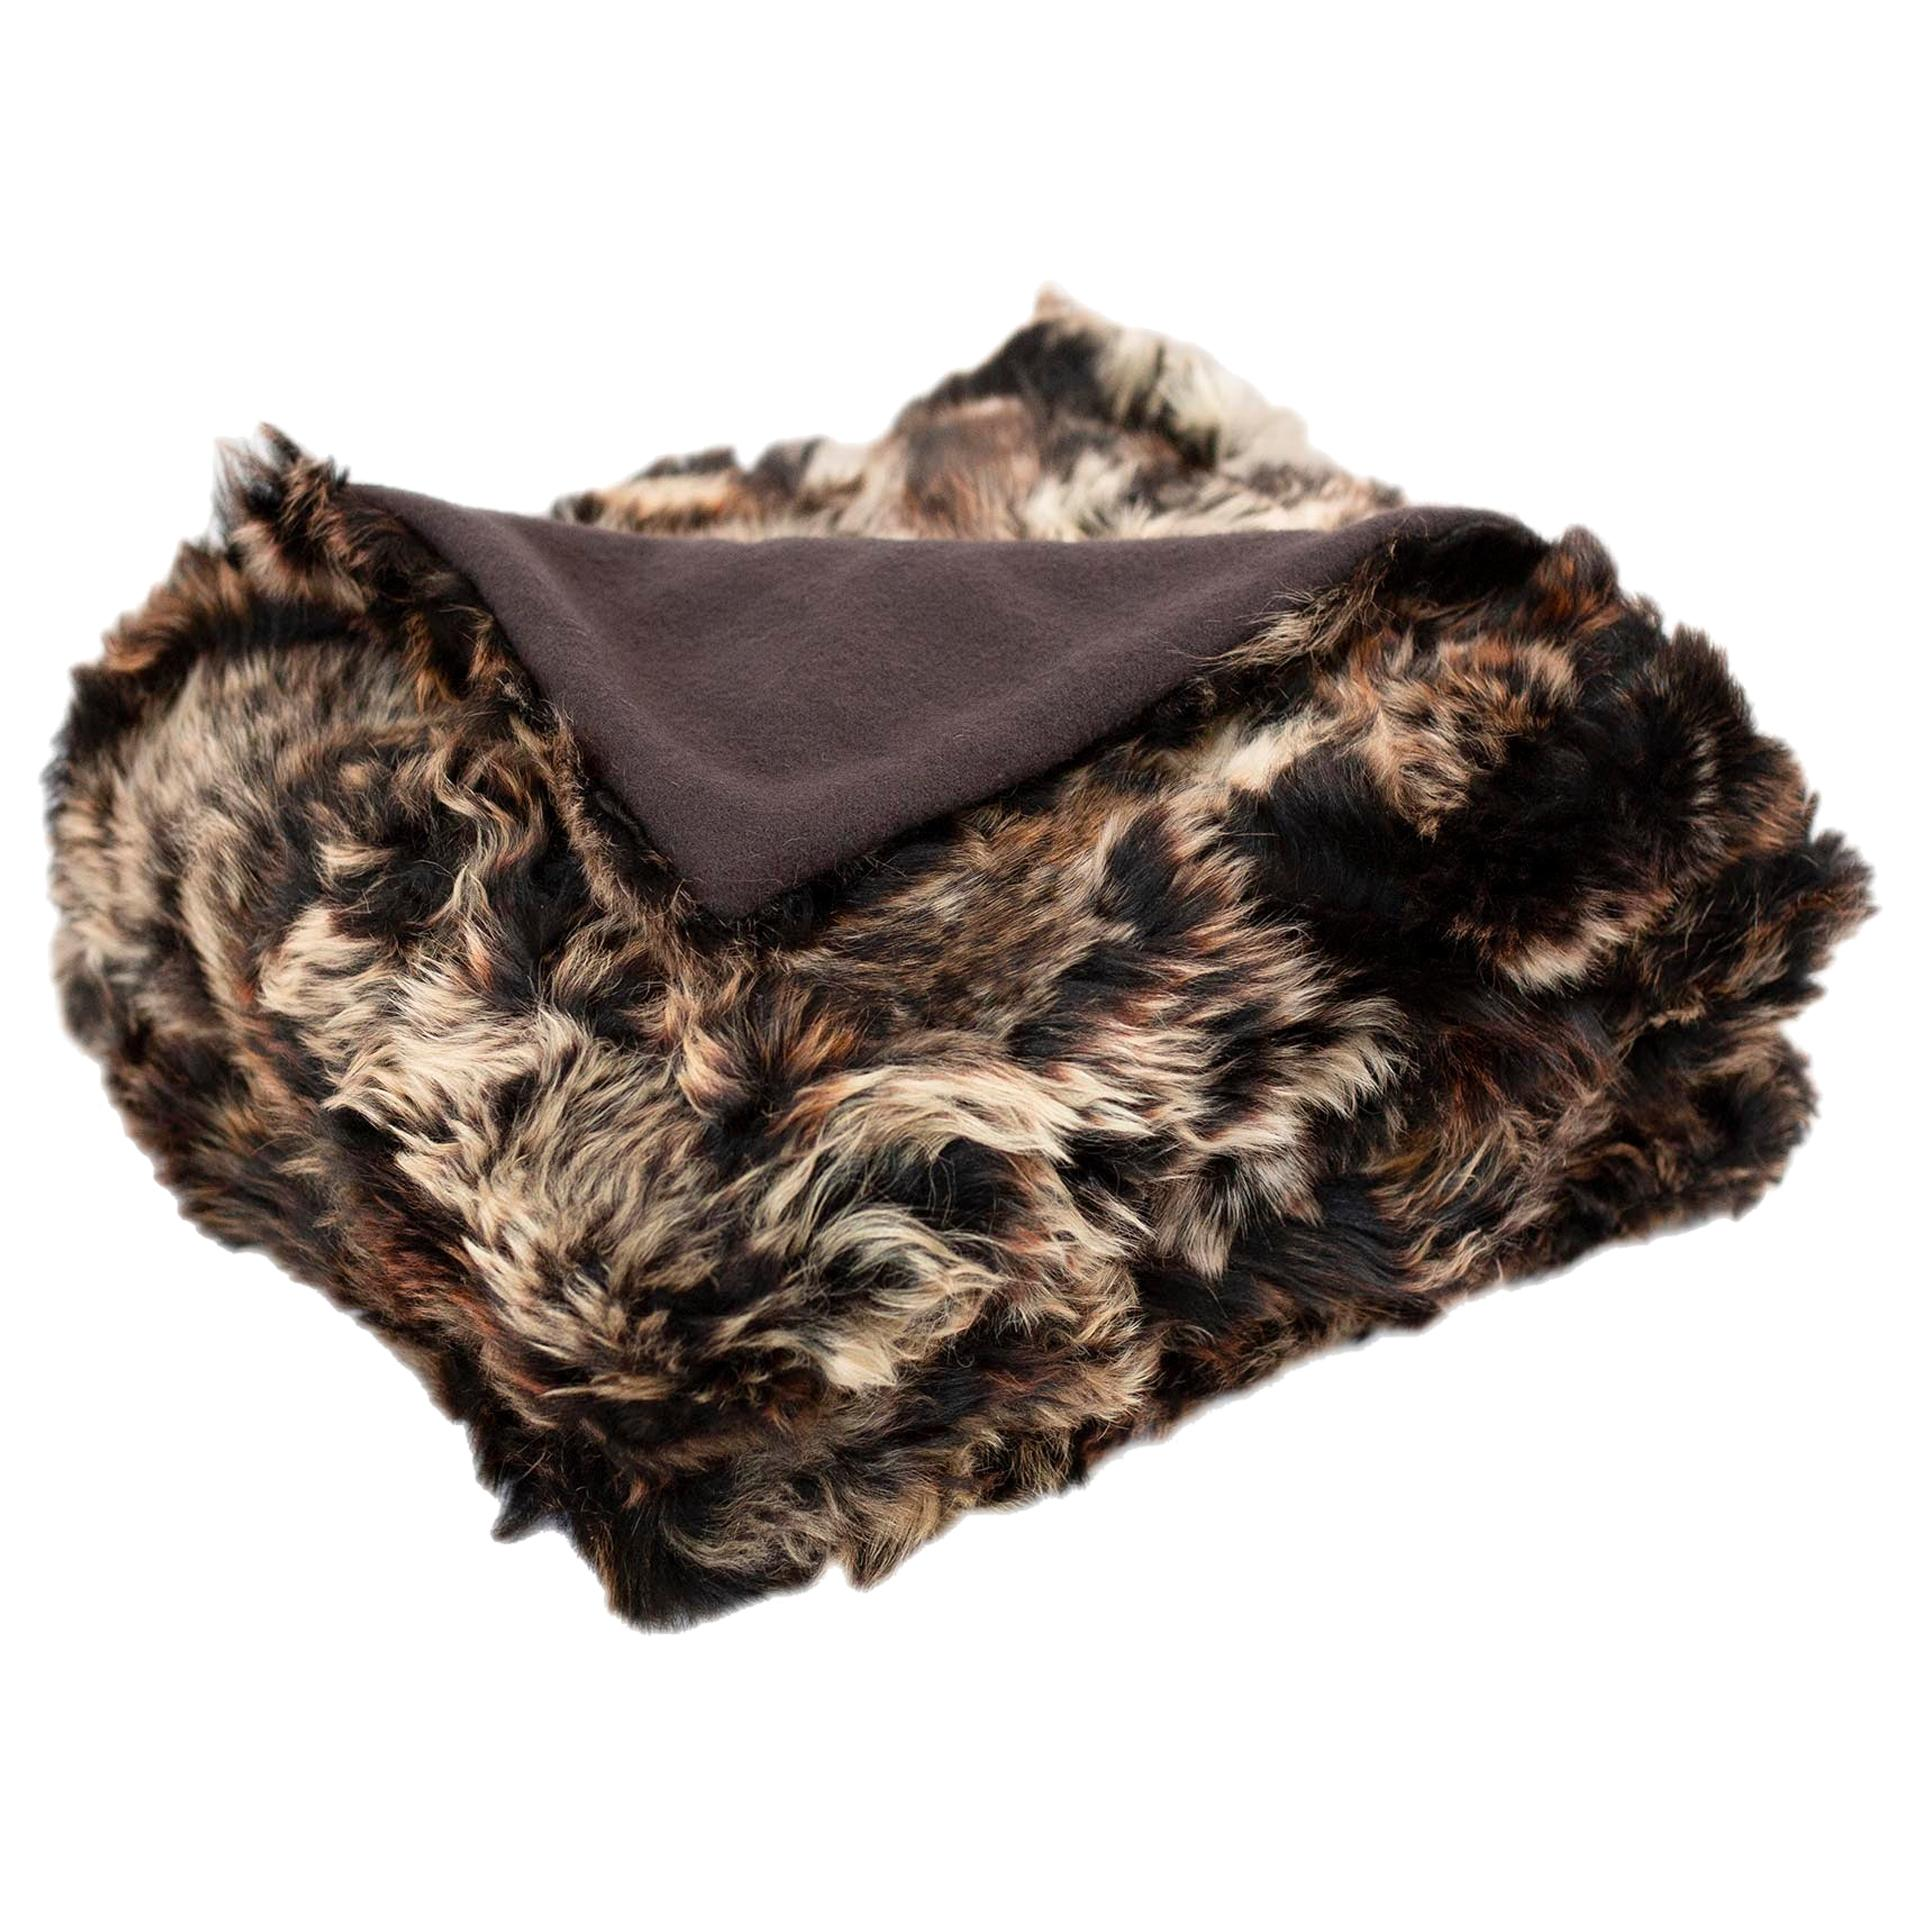 JG Switzer Toscana Sheep Fur Truffle Throw Lined with English Merino Wool